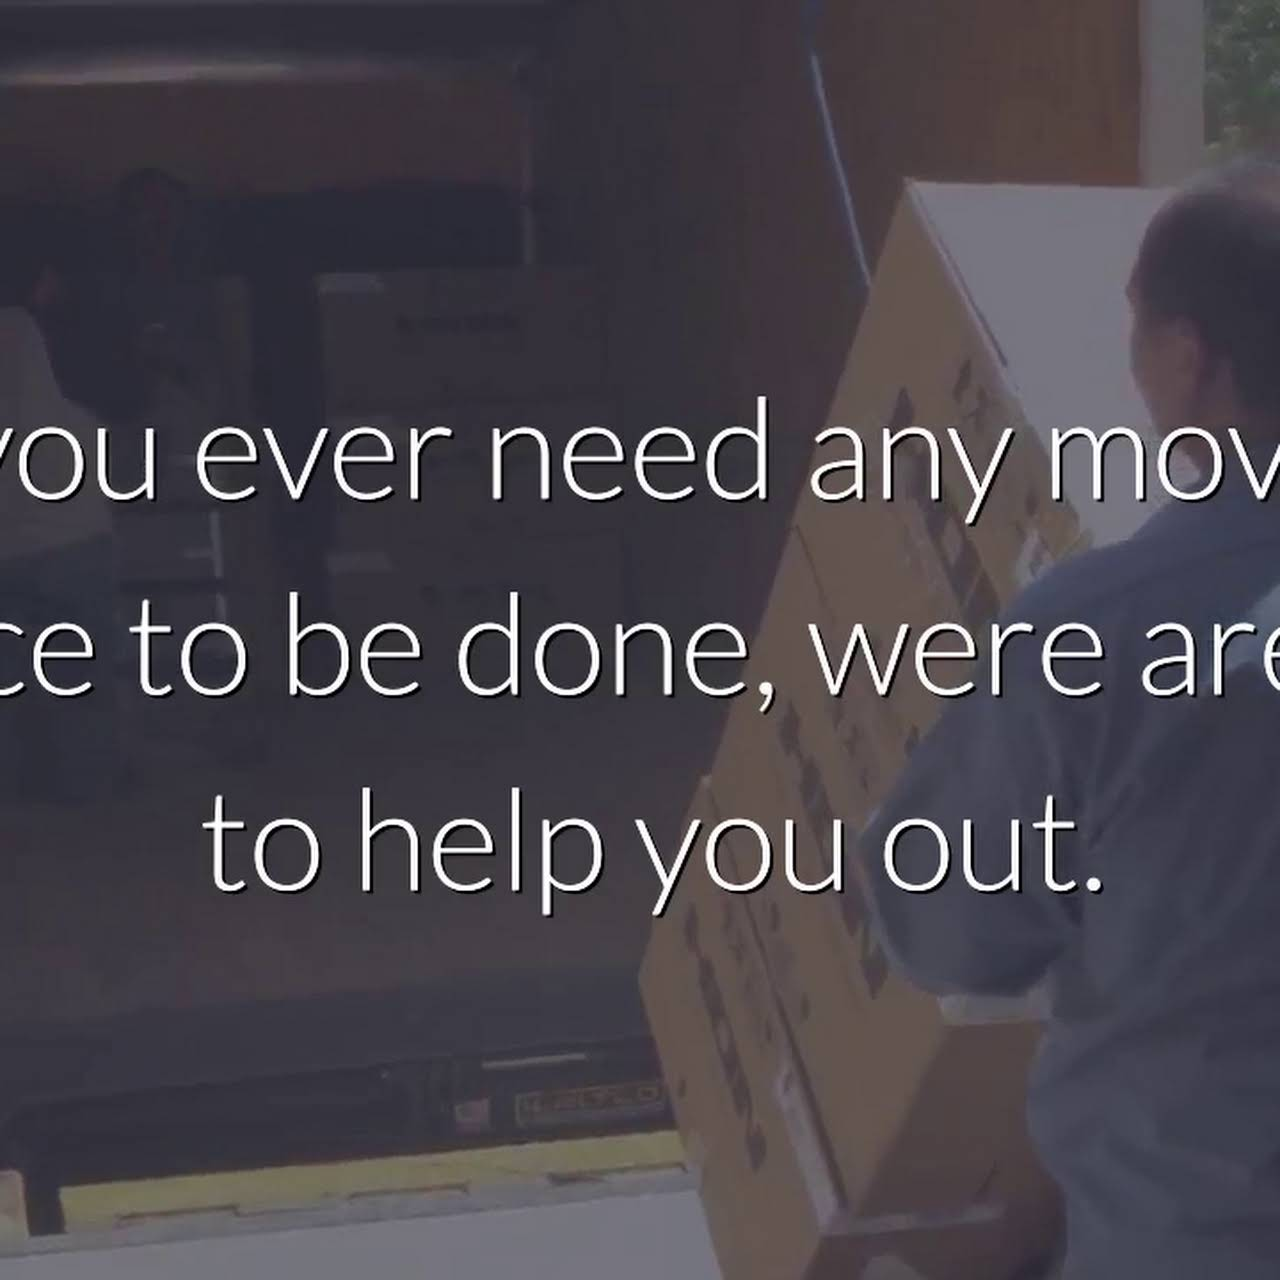 How To Conduct A Removal Safetly Within the Sydney CBD NSW Area